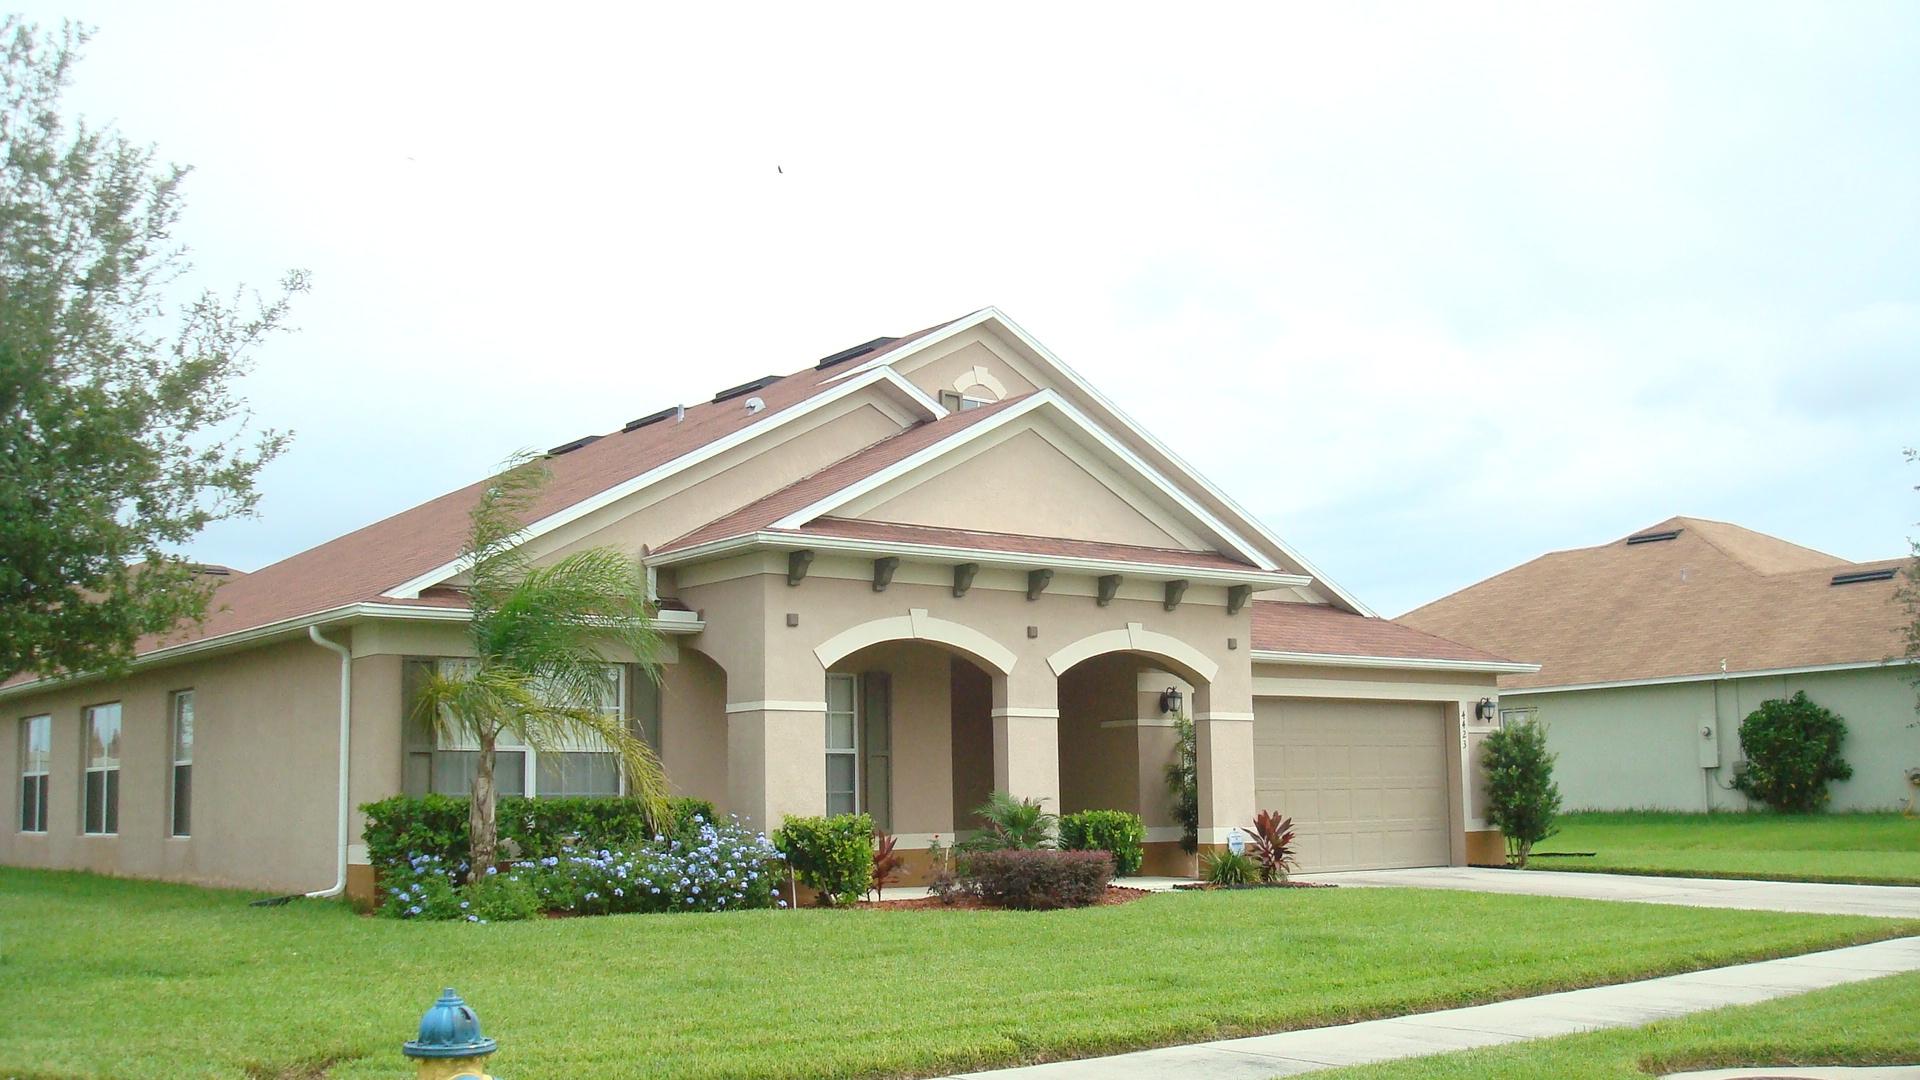 clermont fl homes for sale and market update november 2